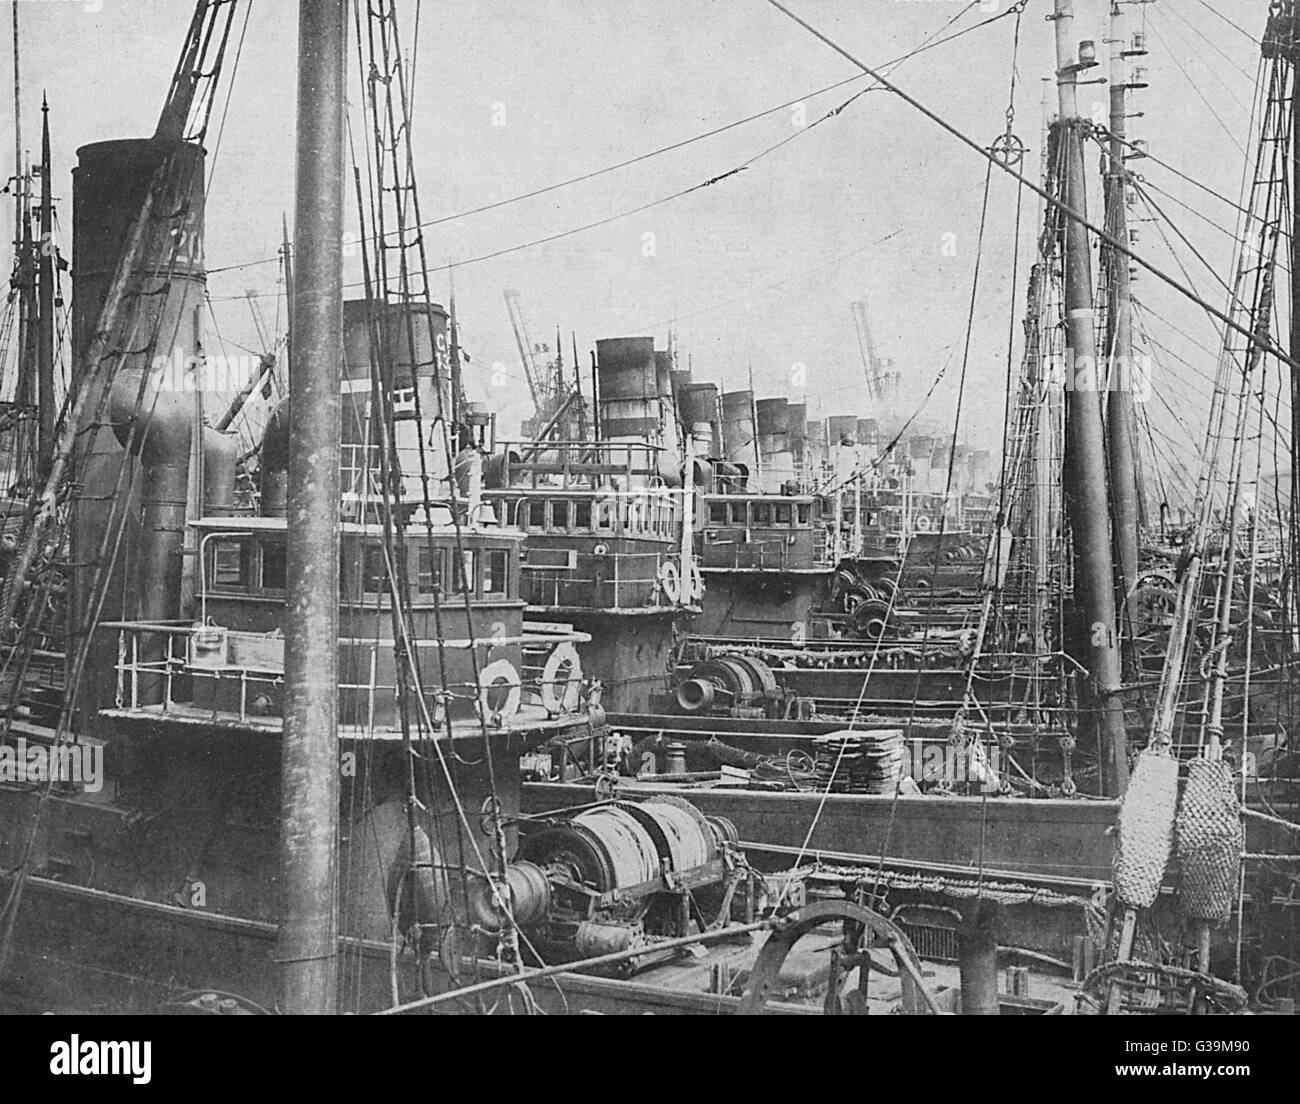 Fishing trawlers and liners   laid up at the Fleetwood docks,   owing to shortage of coal due  to the General Strike - Stock Image